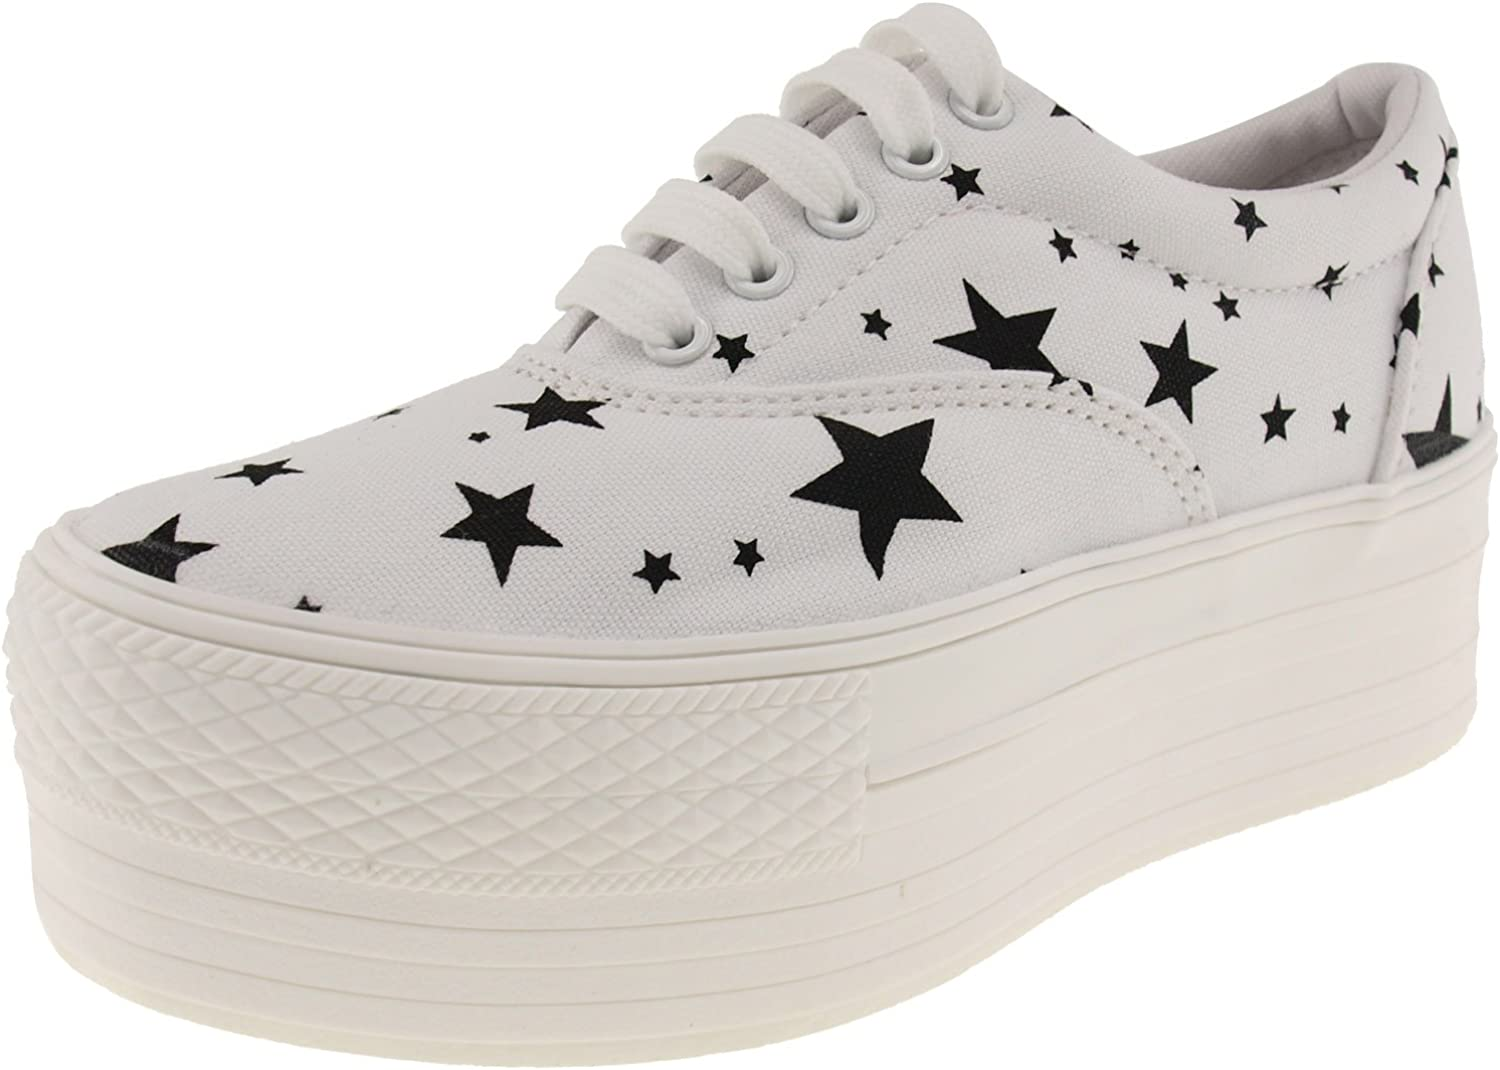 Maxstar Star Patterned Oxford Boat Canvas Platform Sneakers shoes